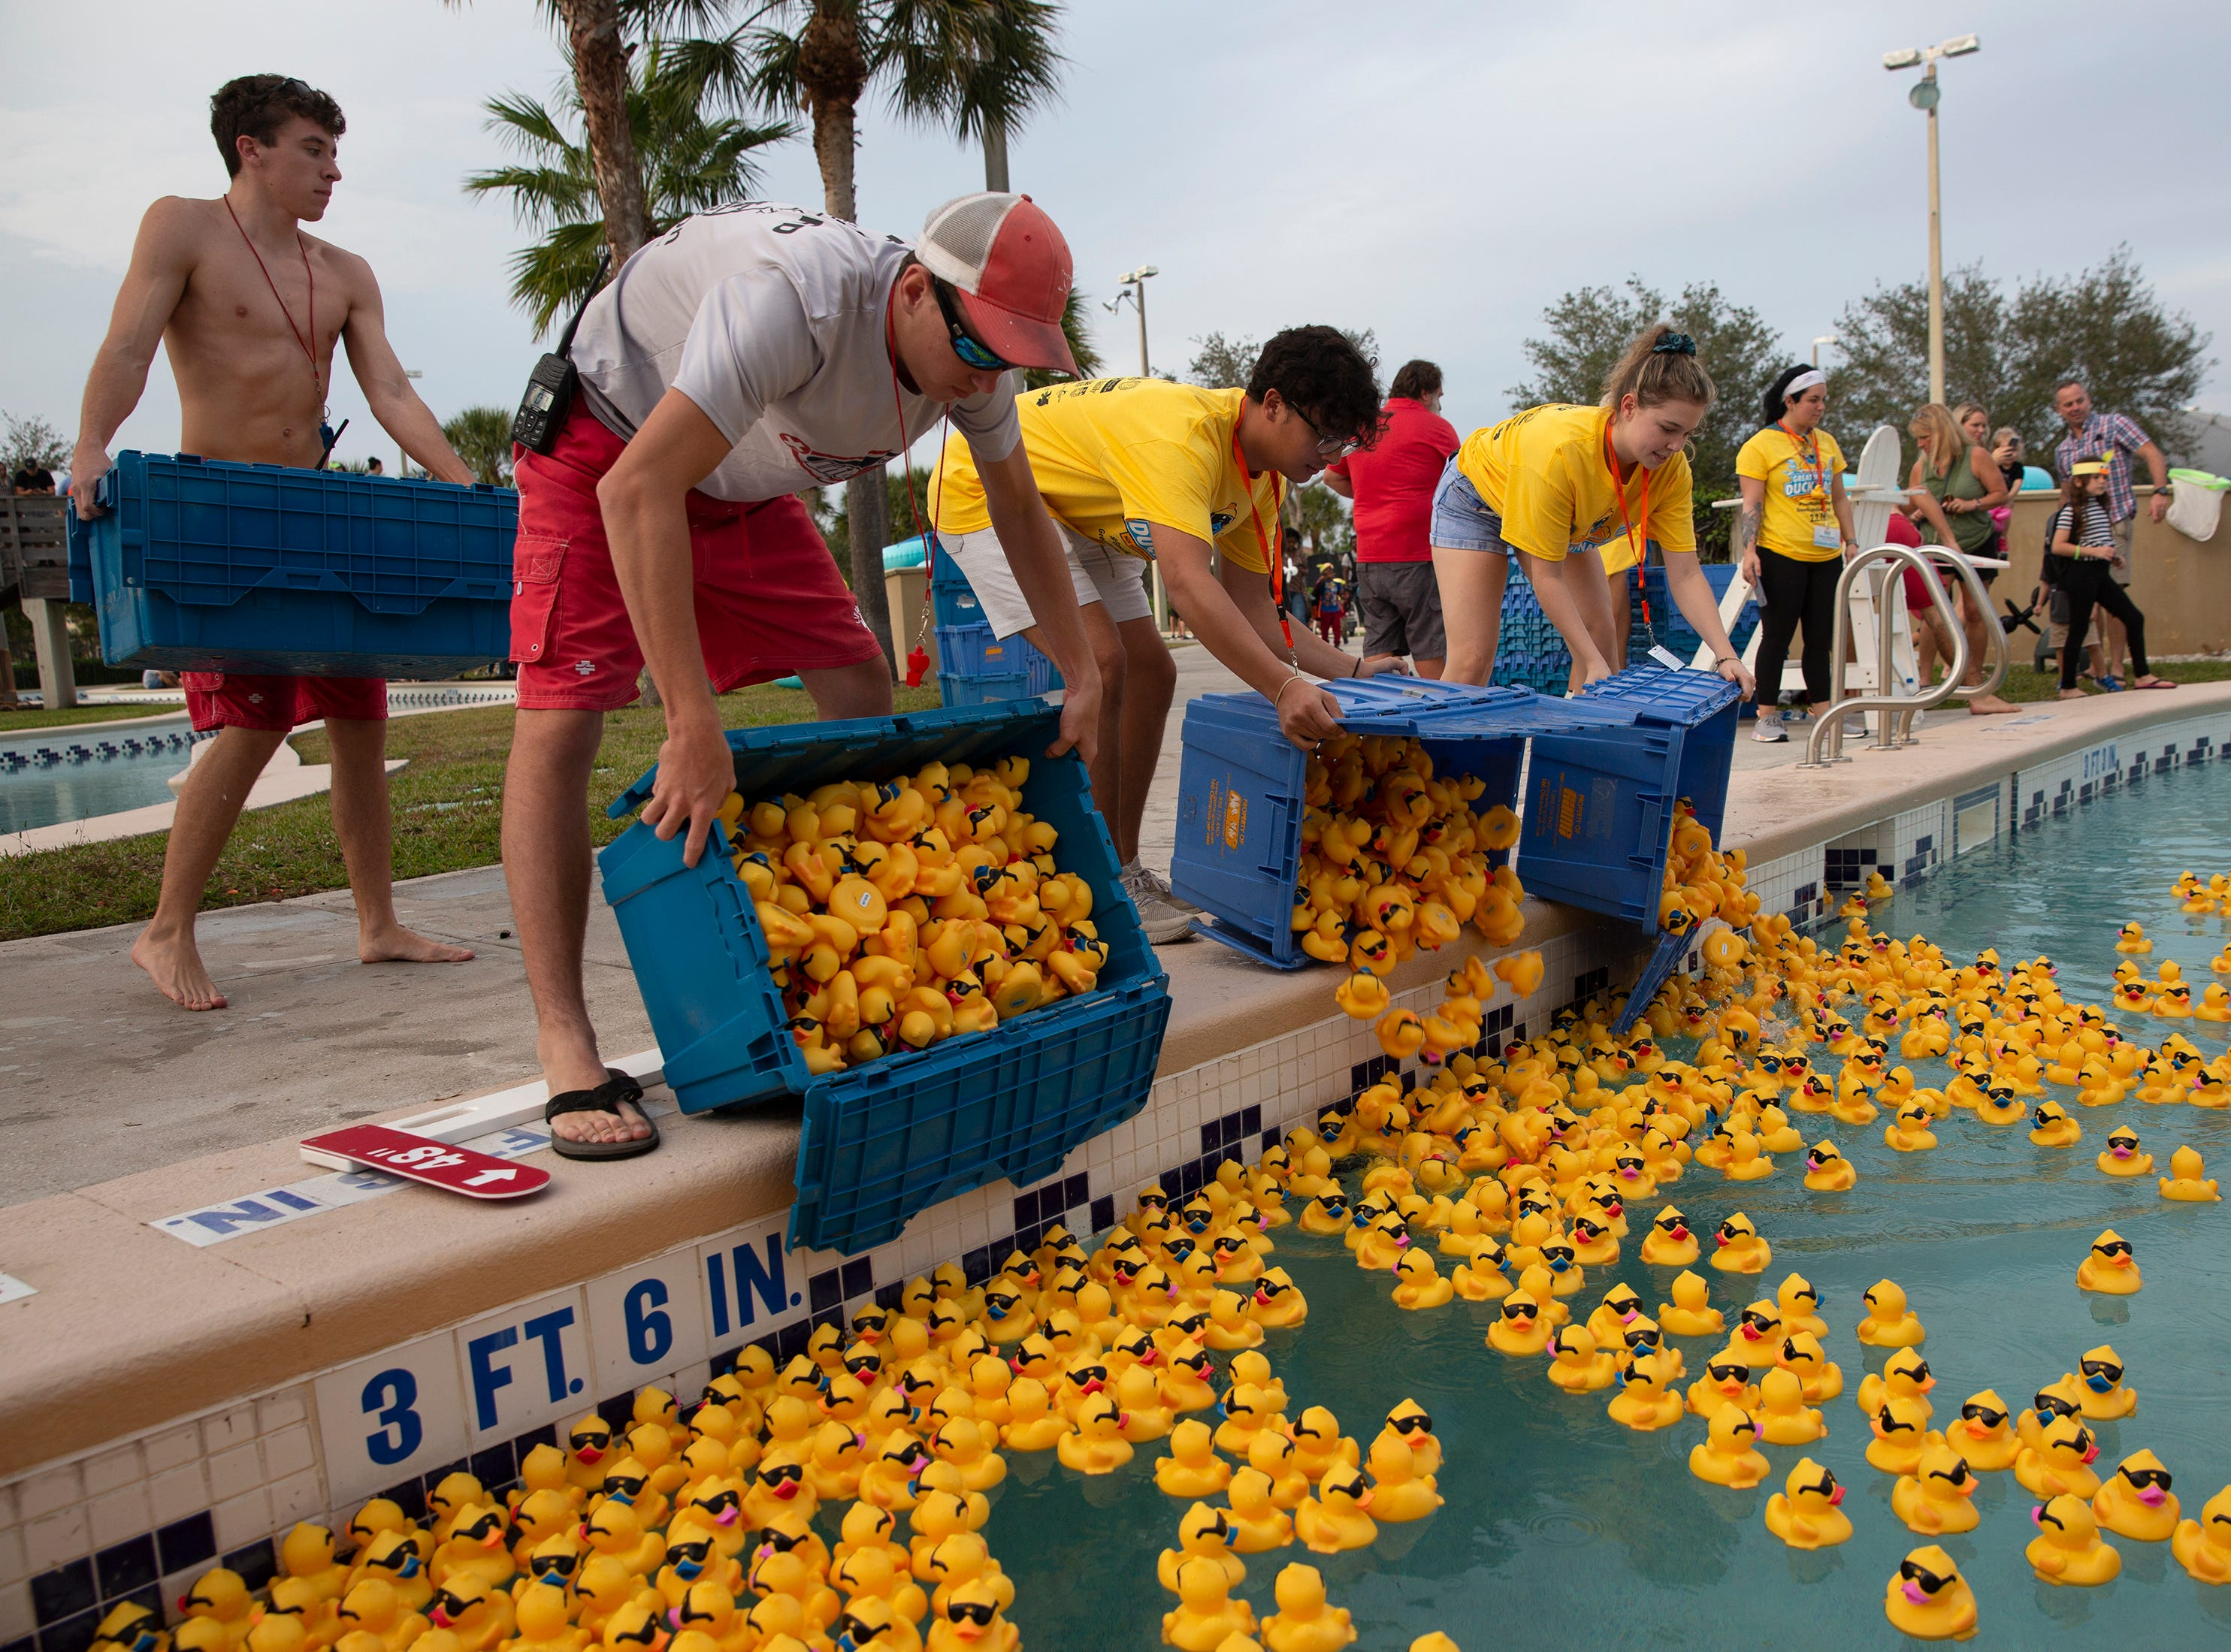 Volunteers prepare rubber ducks for the Great Naples Rubber Duck Race on Saturday, Feb. 2, 2019, at the Sun-N-Fun Lagoon in East Naples.